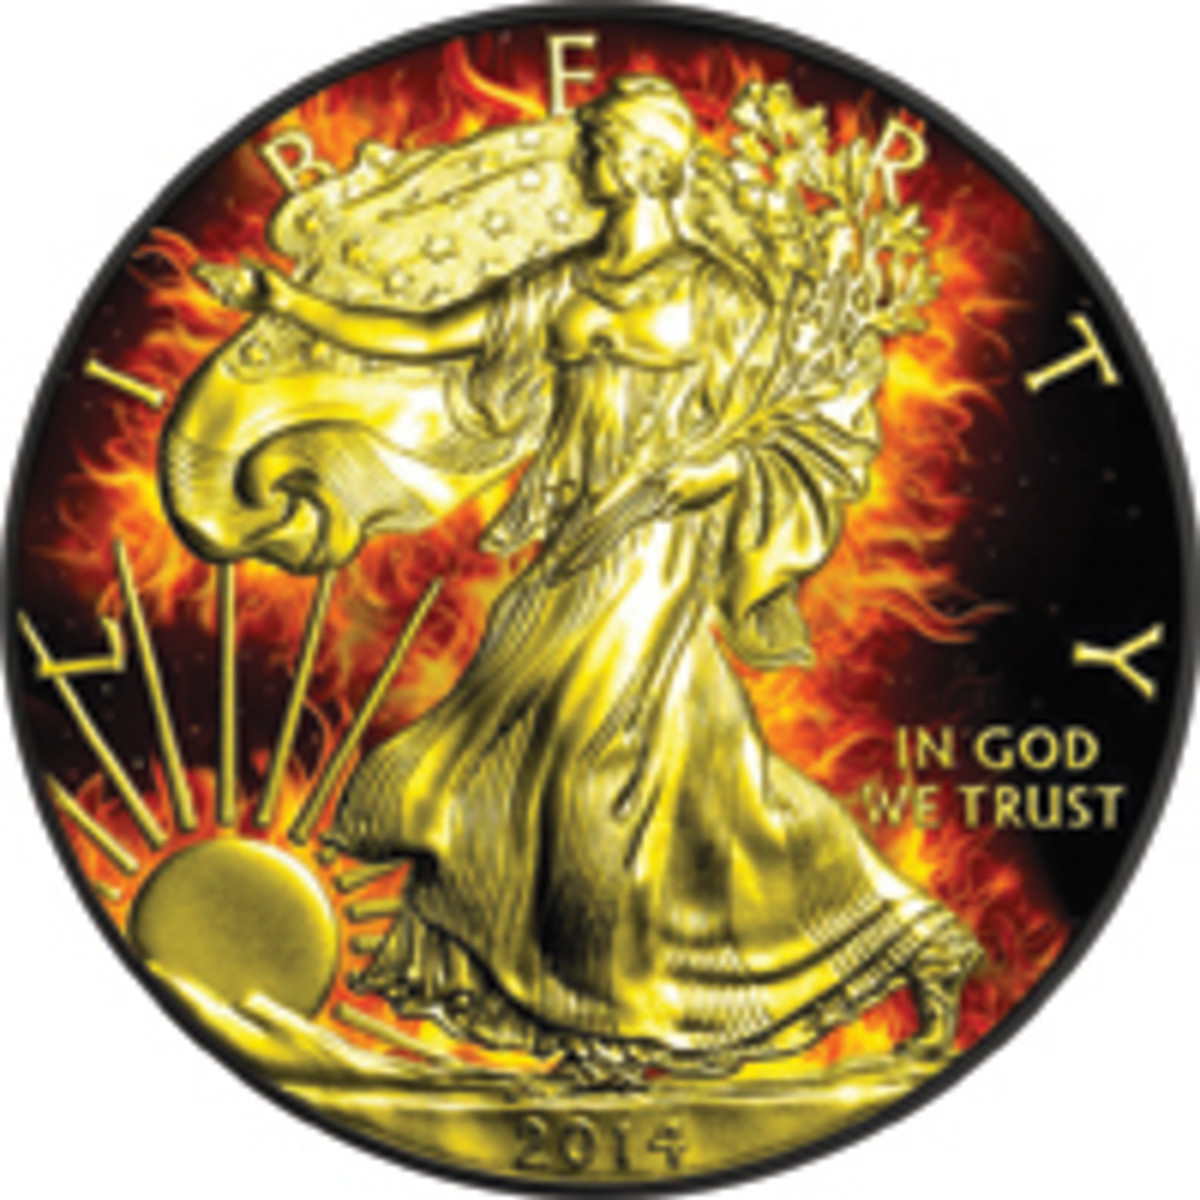 Walking Liberty's fiery aura: 2014 U.S. one-ounce silver Eagle fully plated with ruthenium and then selectively over-plated with gold. (Image courtesy Power Coin www.powercoin.it)